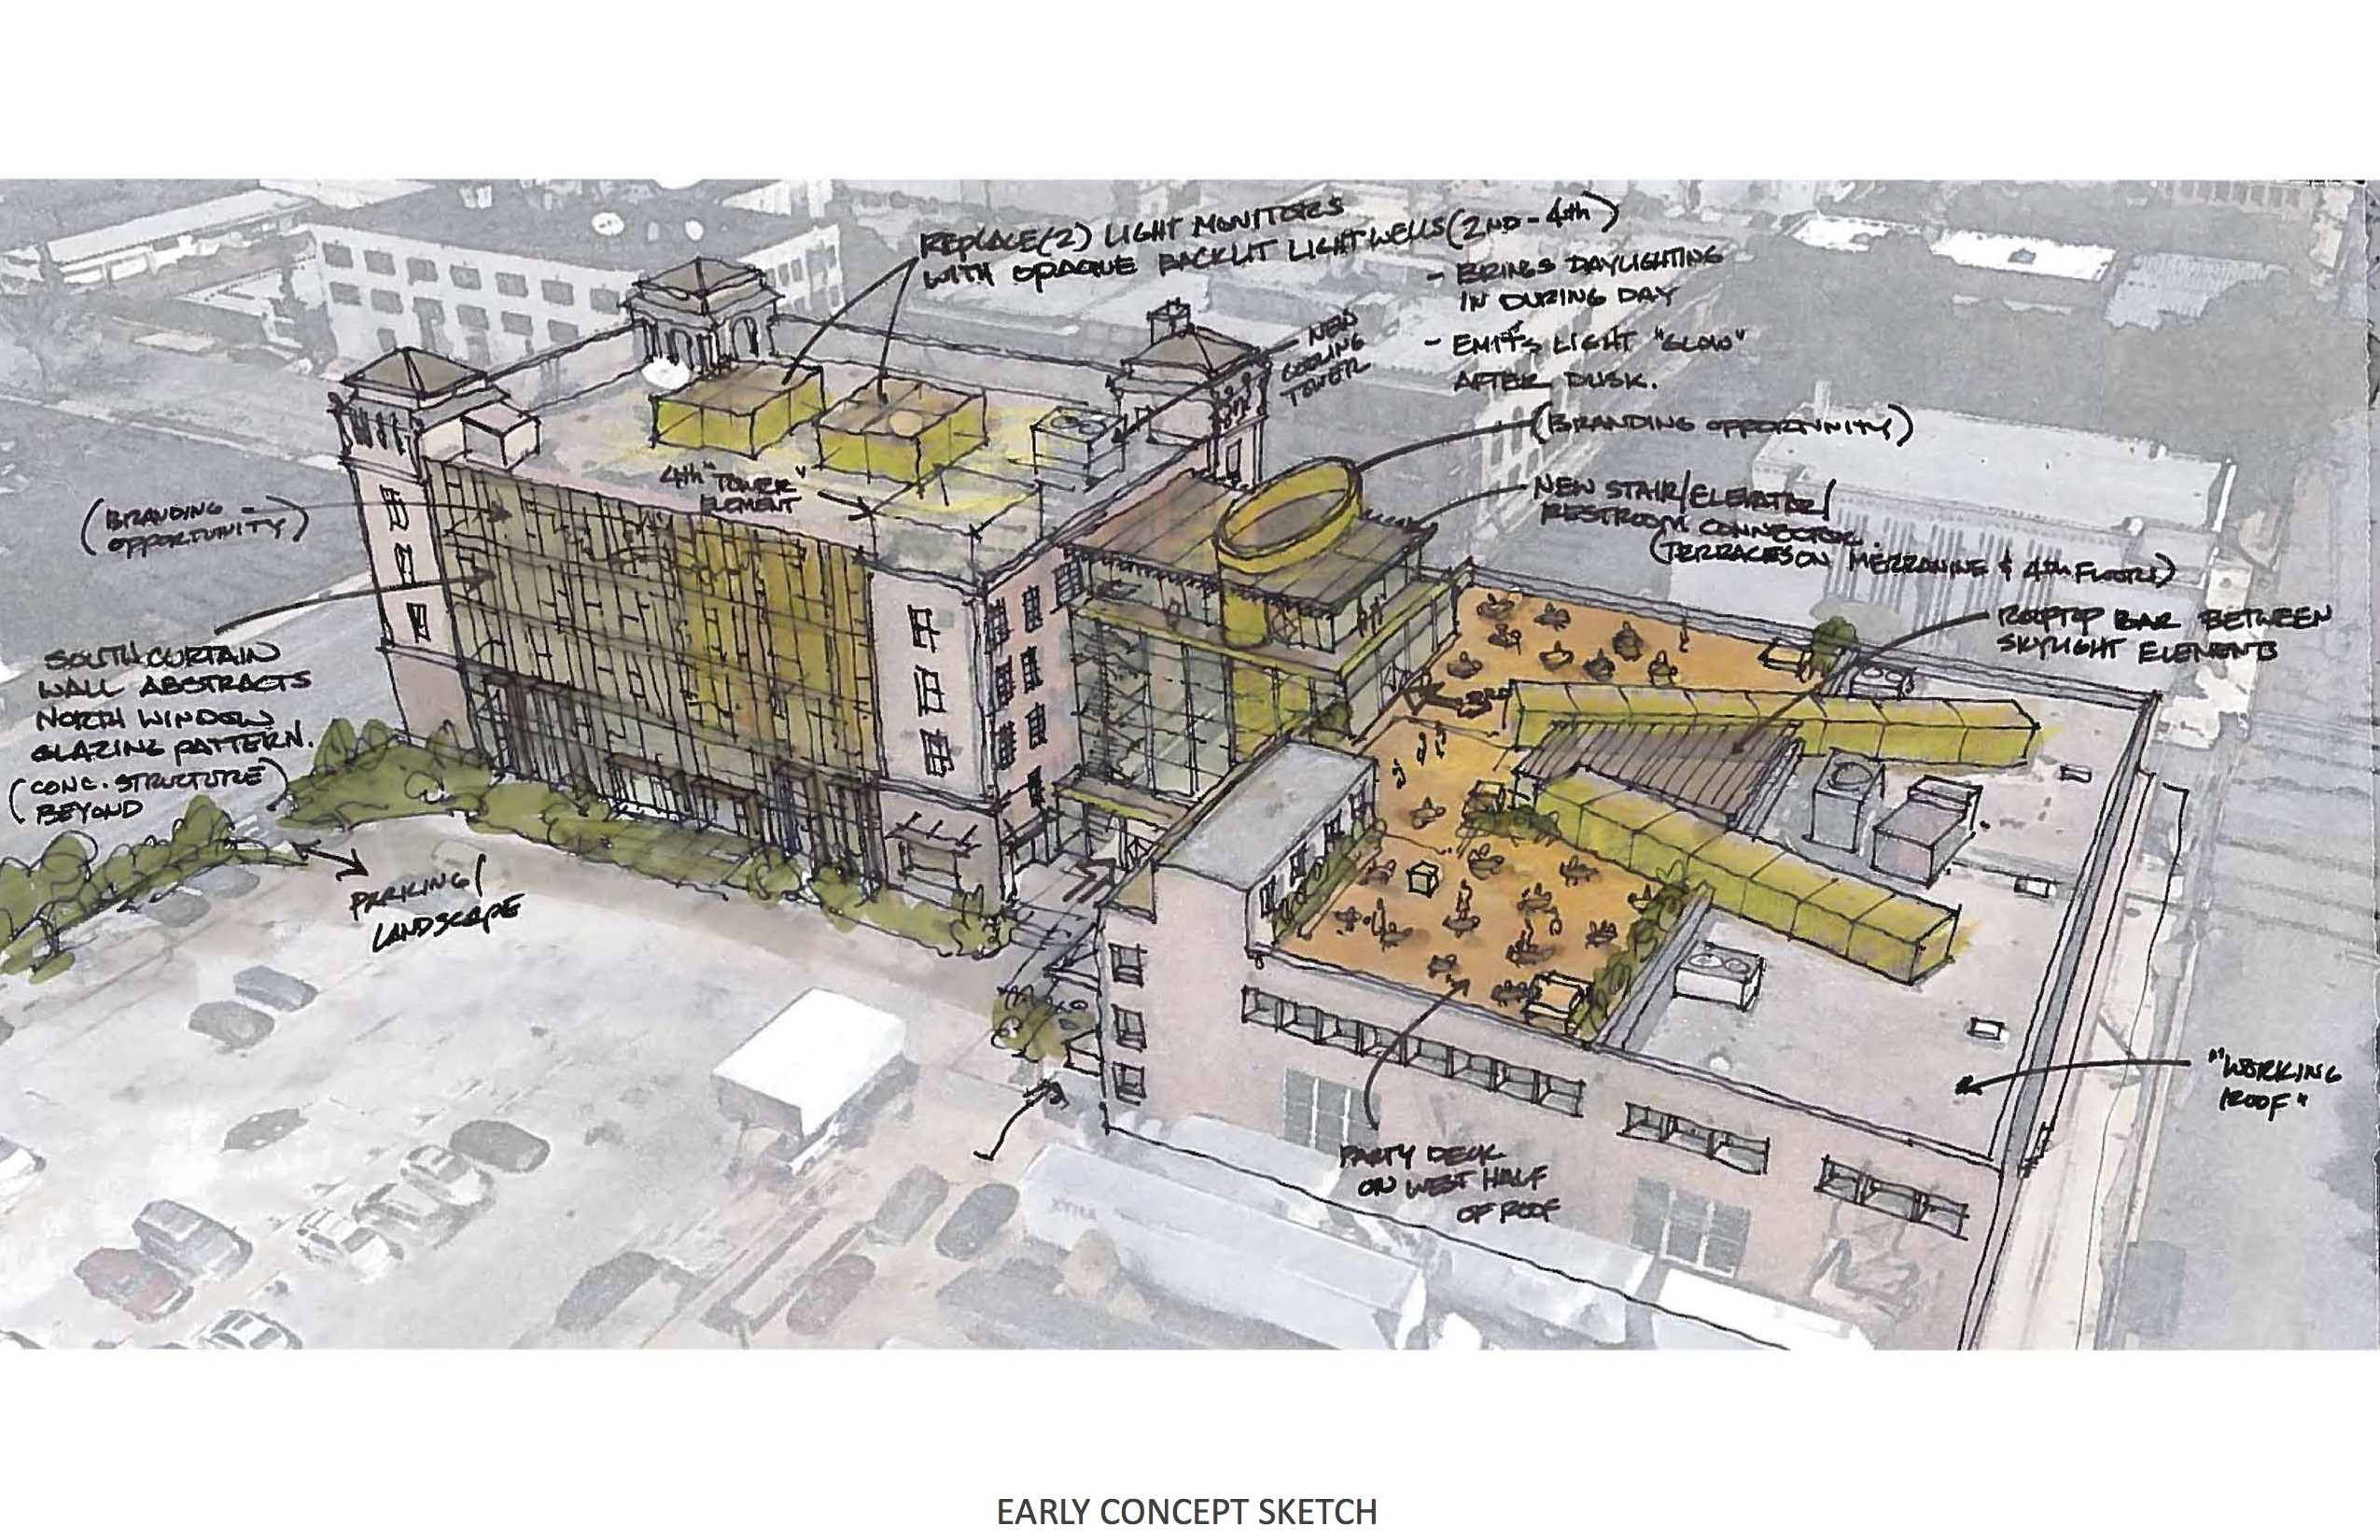 This preliminary sketch of the project at 420 Broadway St. depicted a glass connector between the Light and Print buildings. Current renderings show this connector as solid with a few windows.